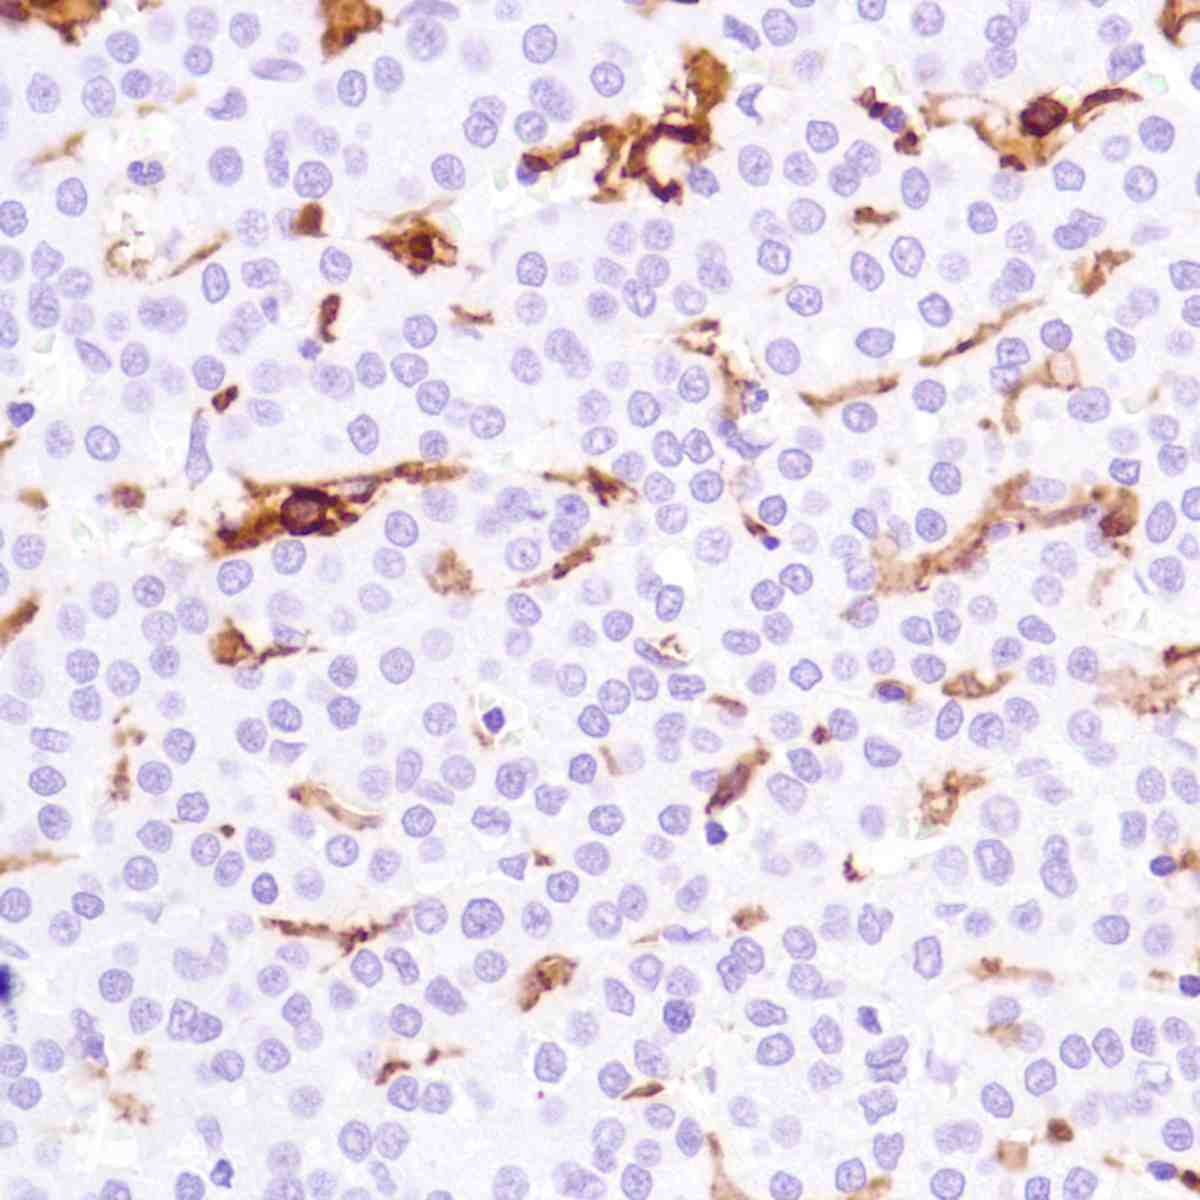 Human Liver Hepatocellular Carcinoma stained with anti-CD16a antibody